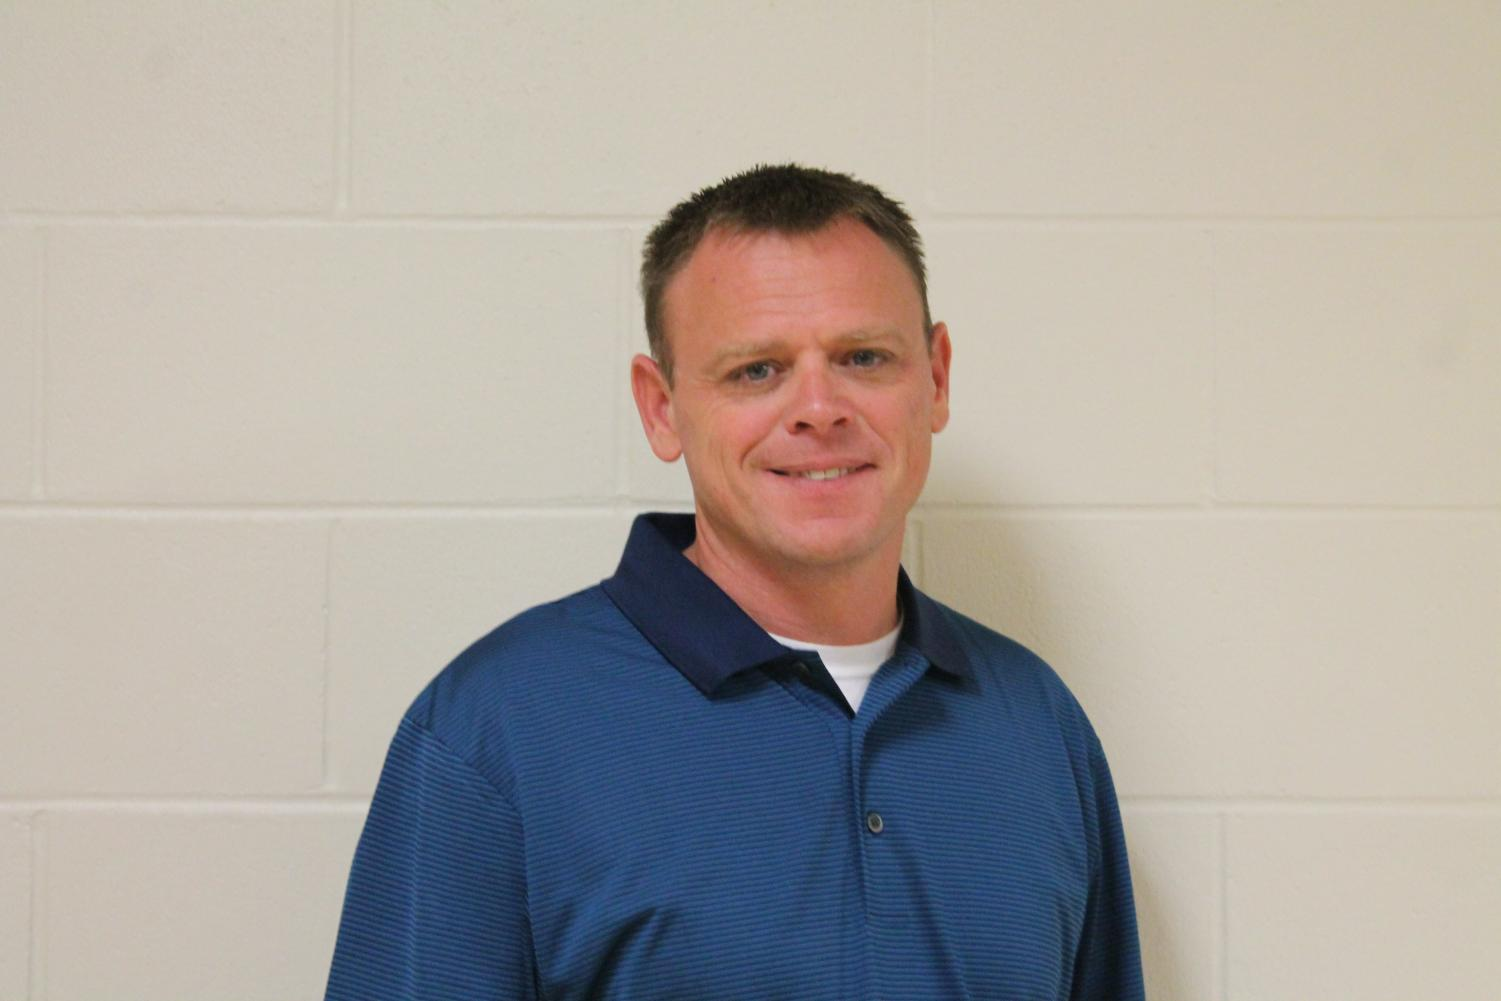 Wayne Stephenson recently took on a new role as Assistant Principal.